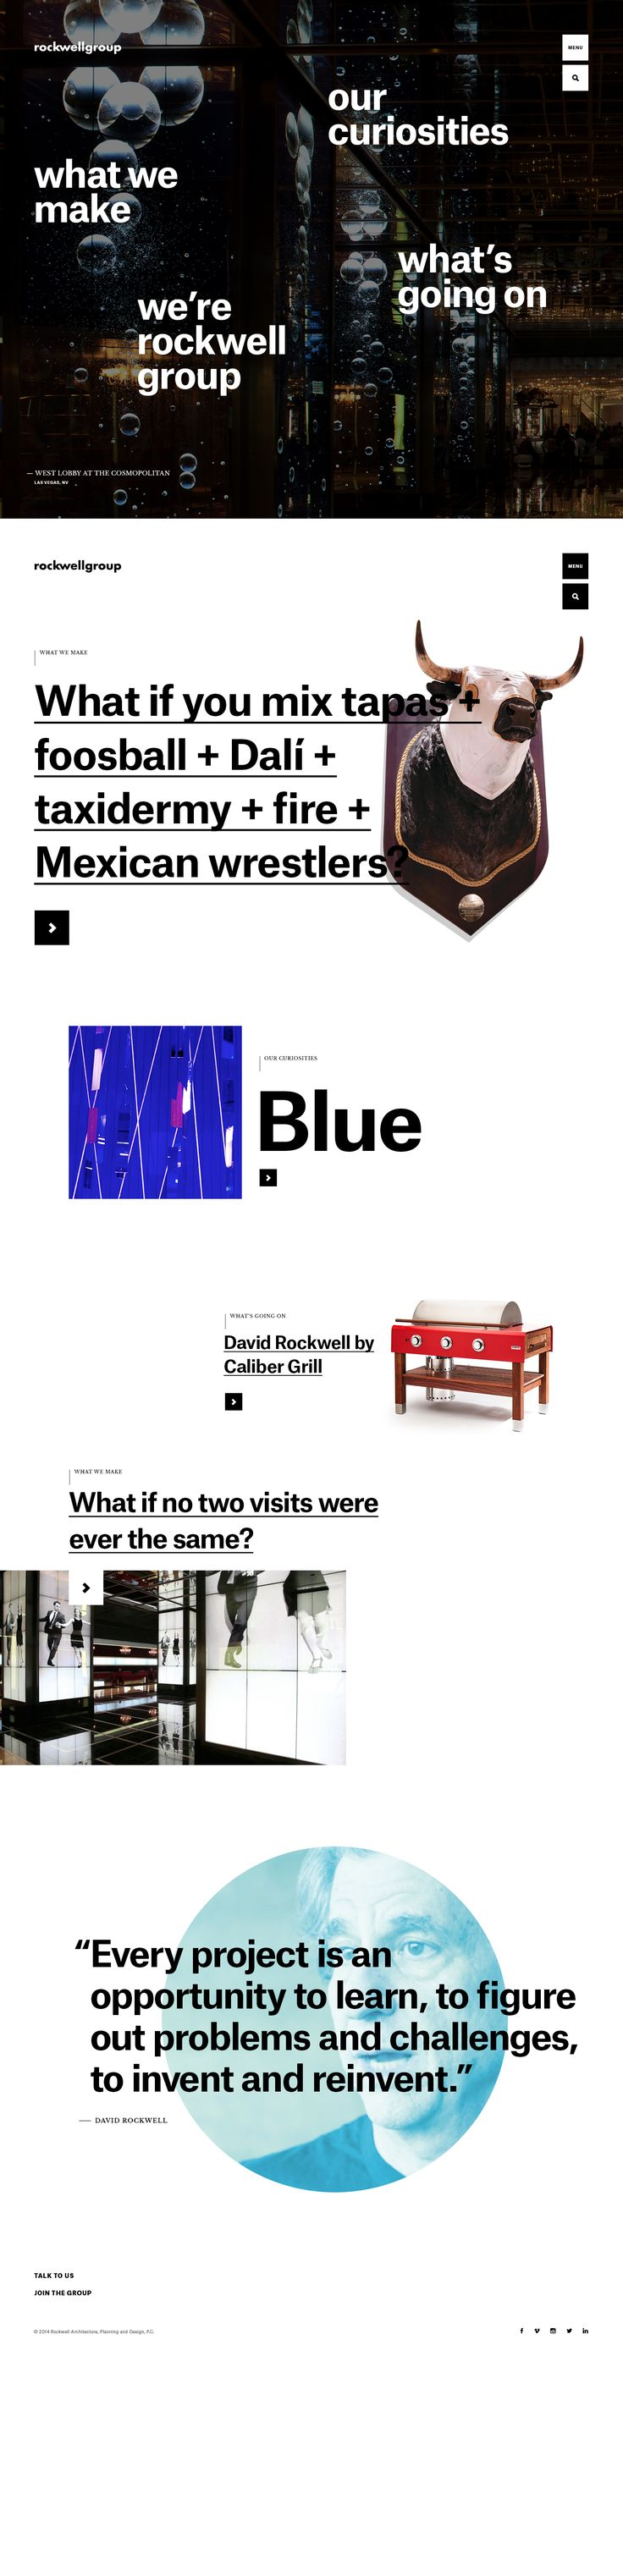 Rockwell Group - Things We Make - Code and Theory